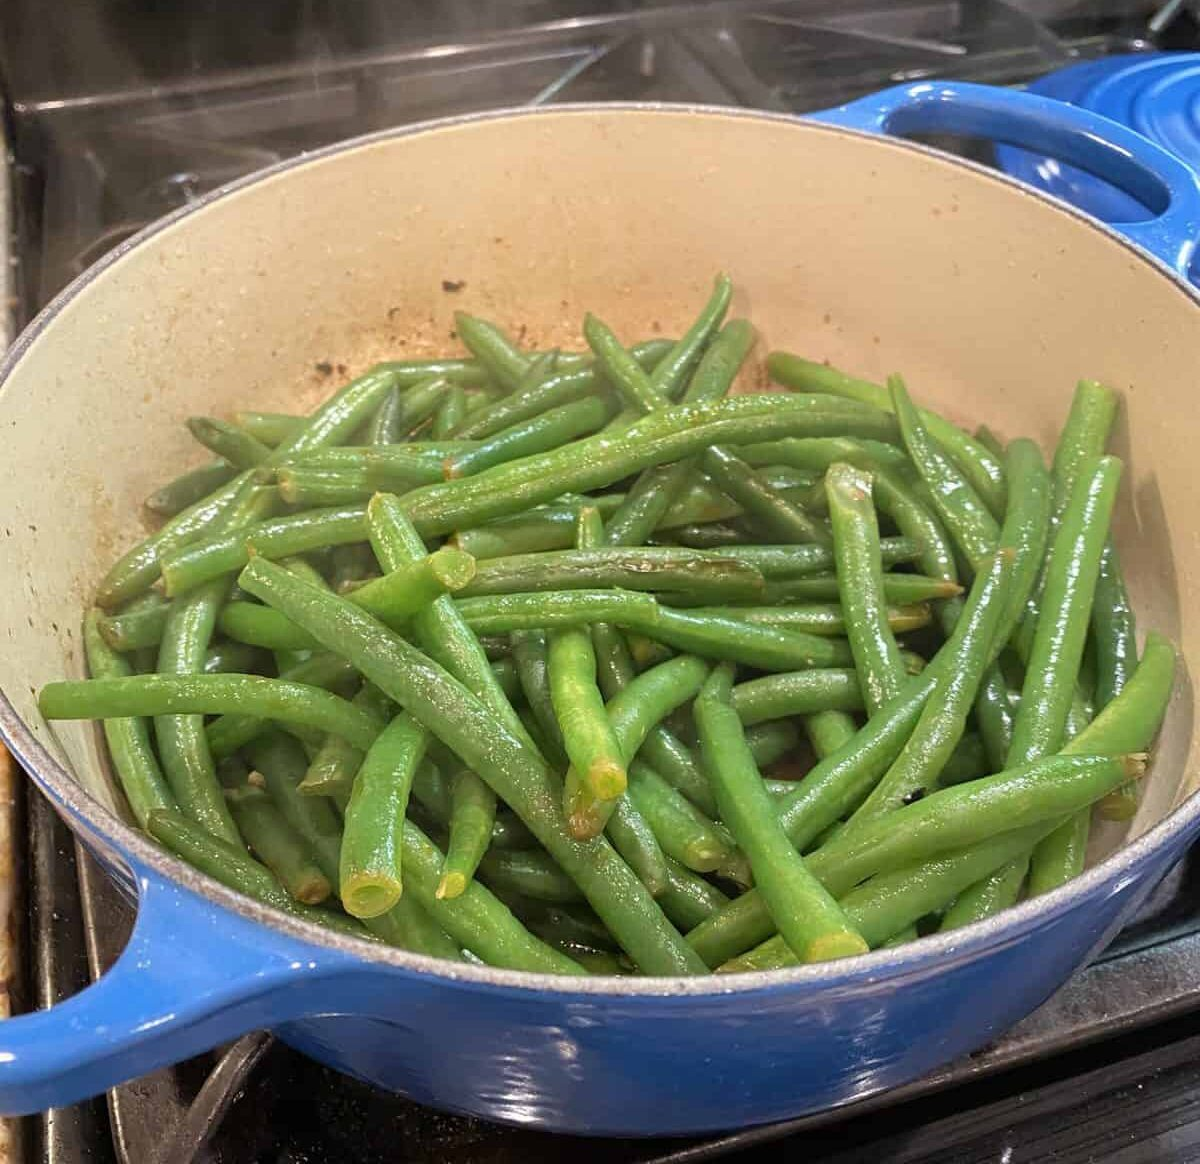 Green beans sautéing on the stove.